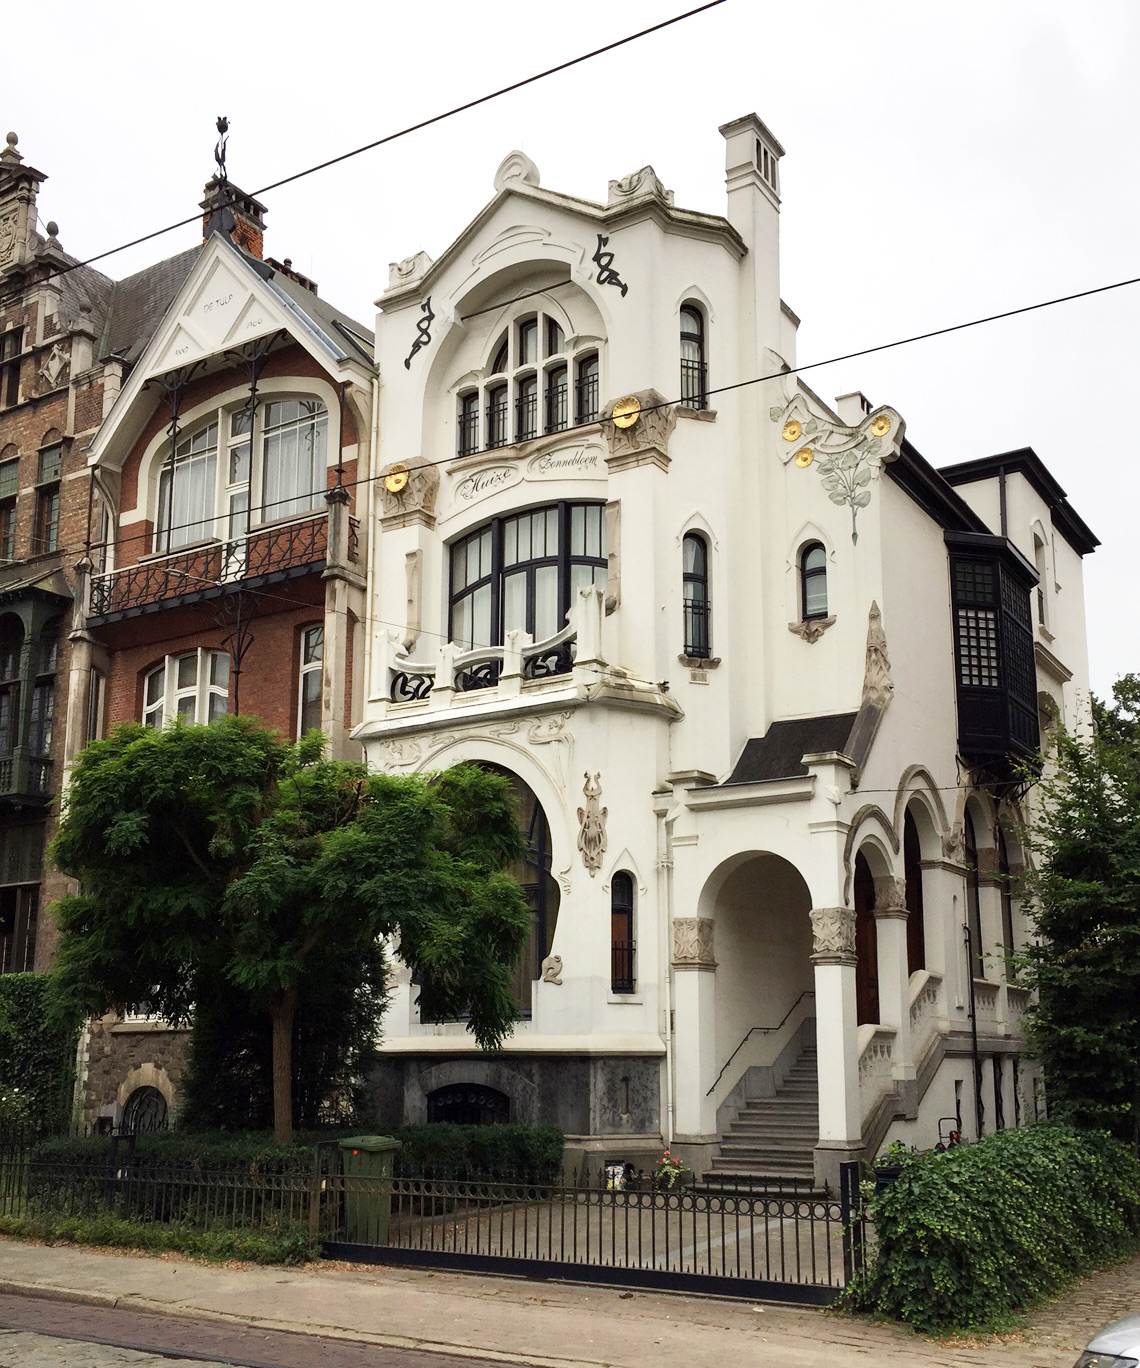 The beige Art Nouveau home is assymetrical